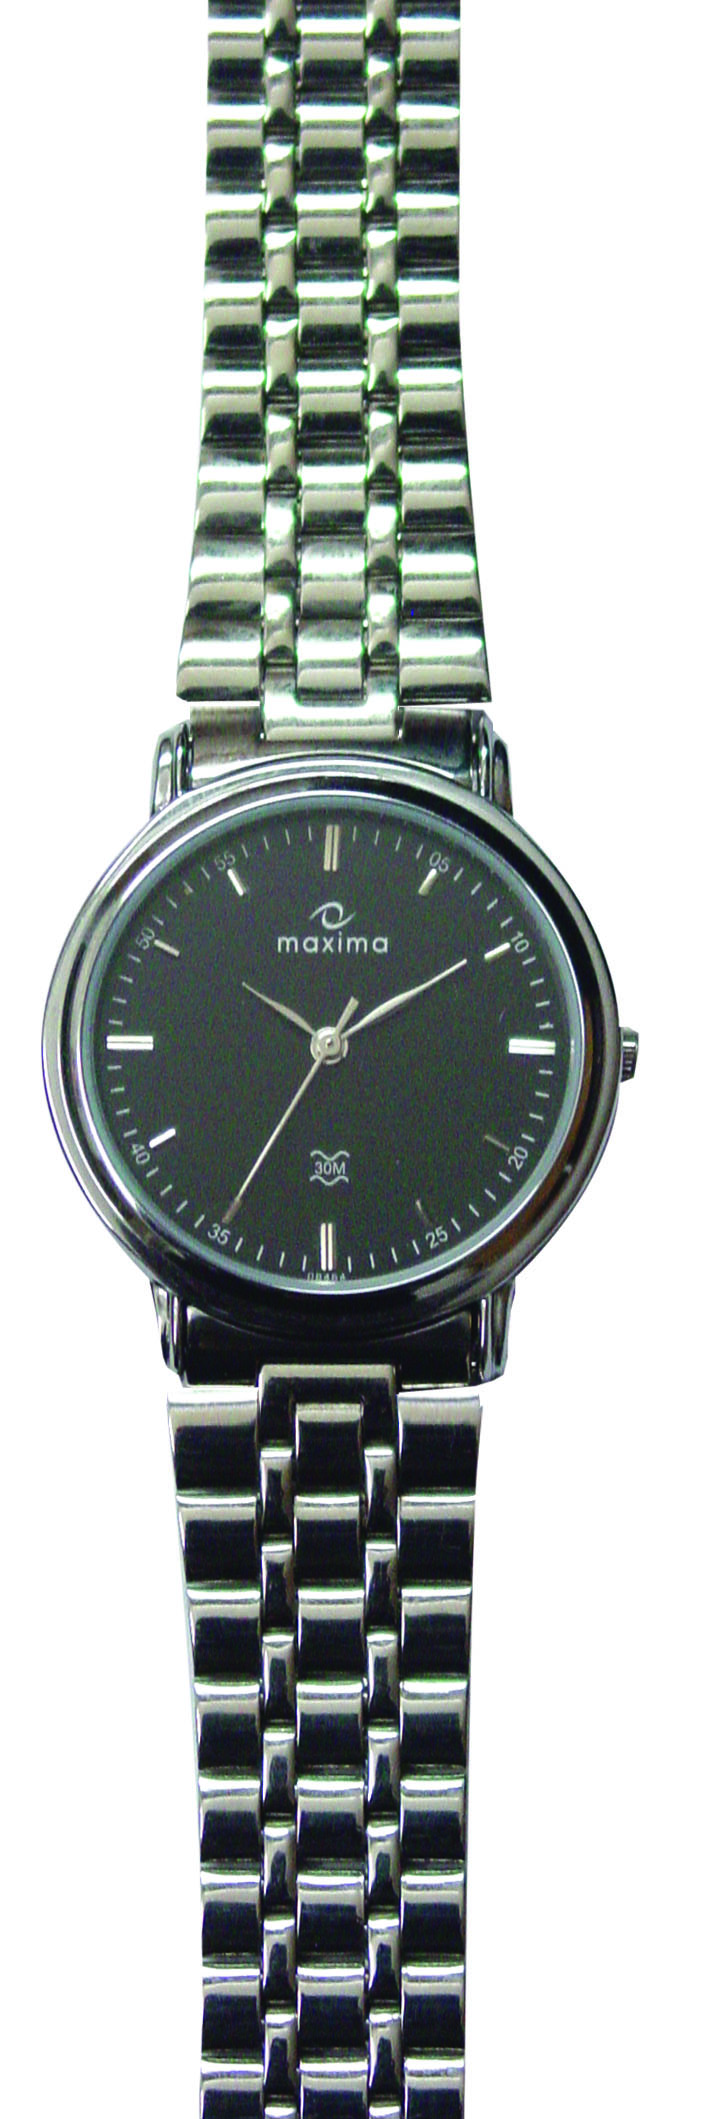 maxima silver analogue watches 08464cmgi for prices